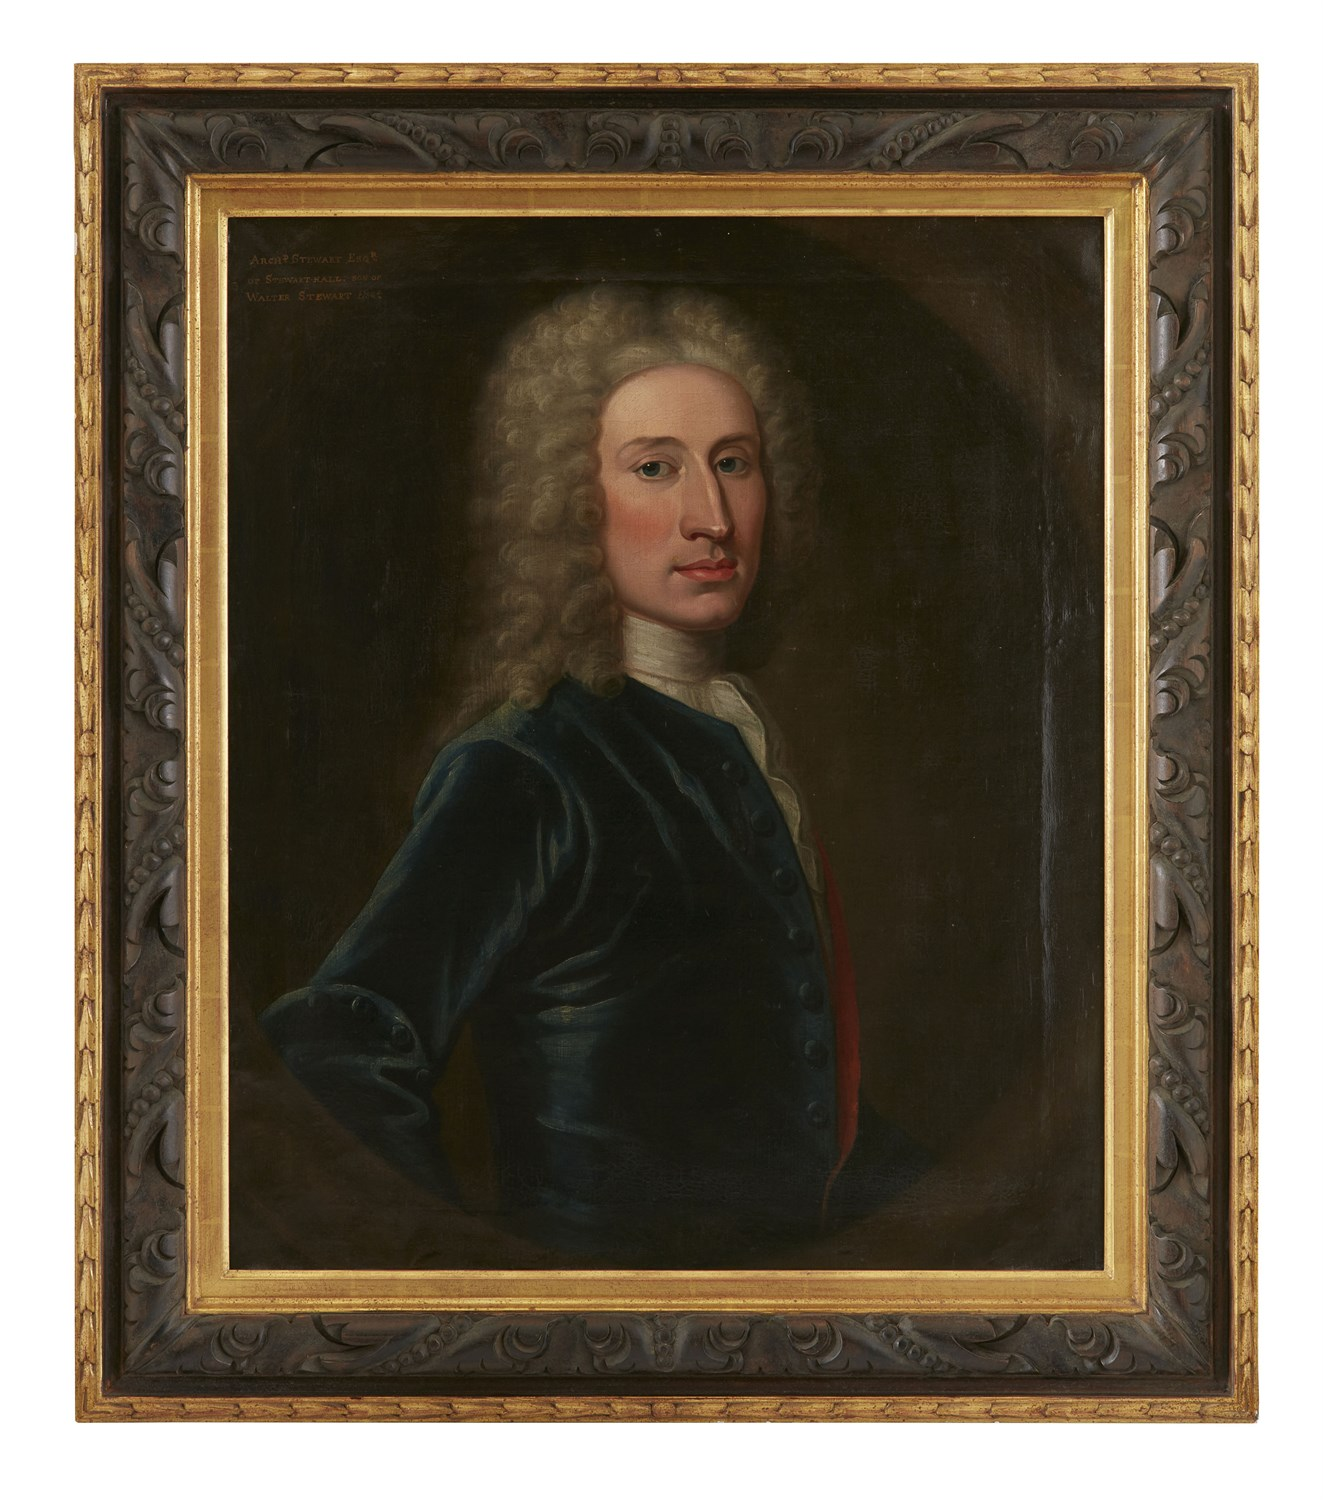 Lot 35-ATTRIBUTED TO WILLIAM AIKMAN